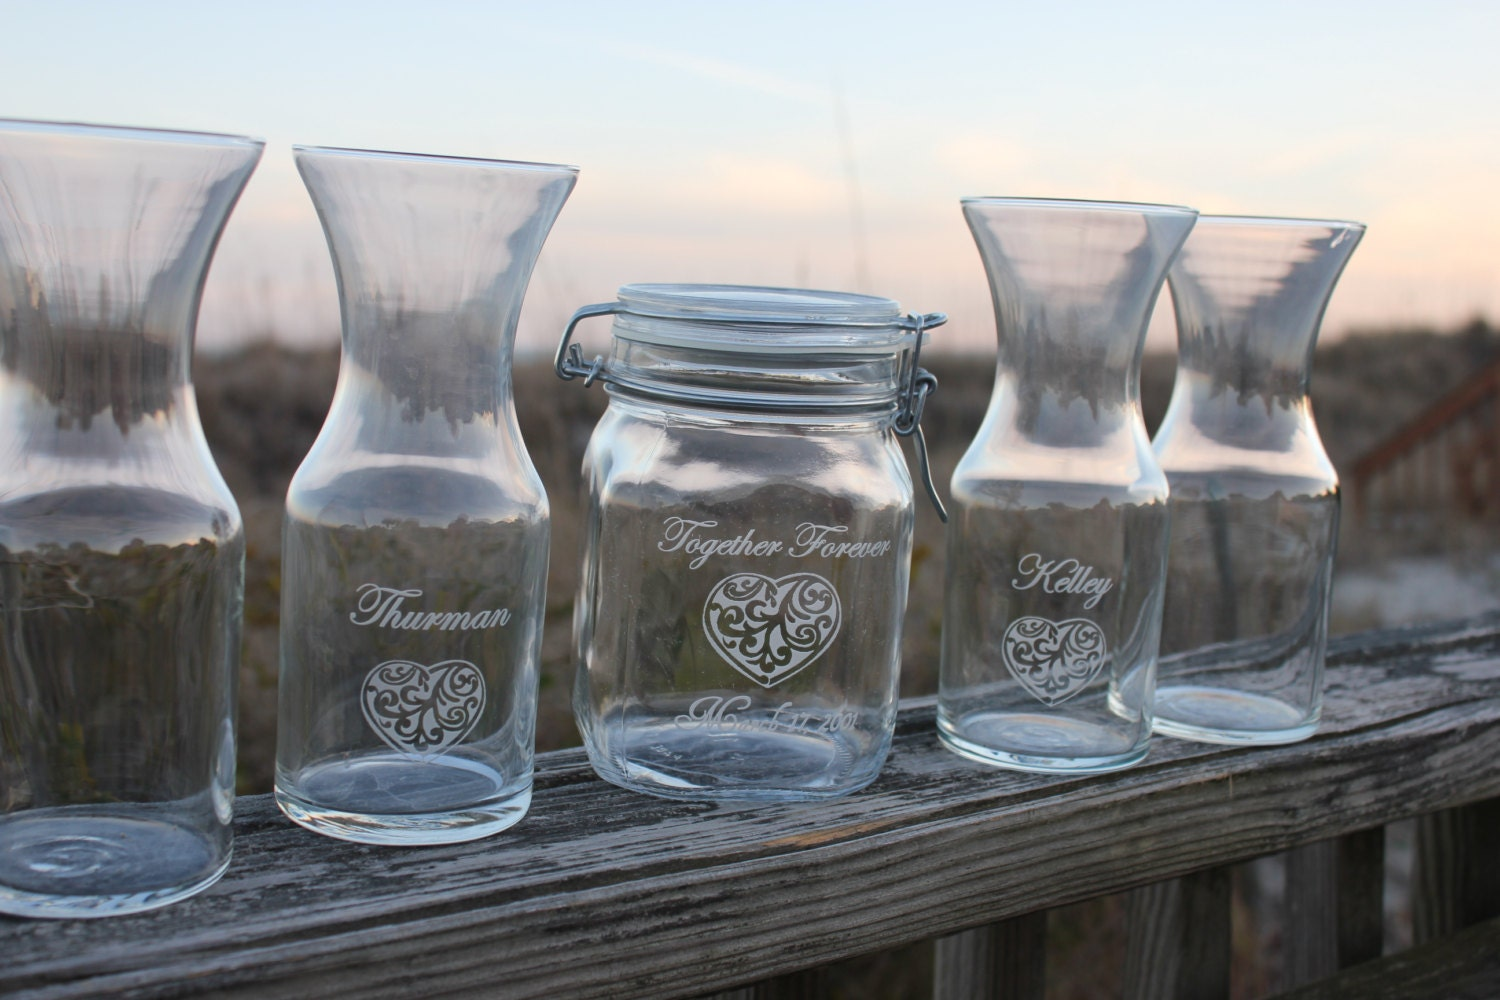 5 Piece Unity Sand Ceremony Set Country Style 4 Pouring Vases